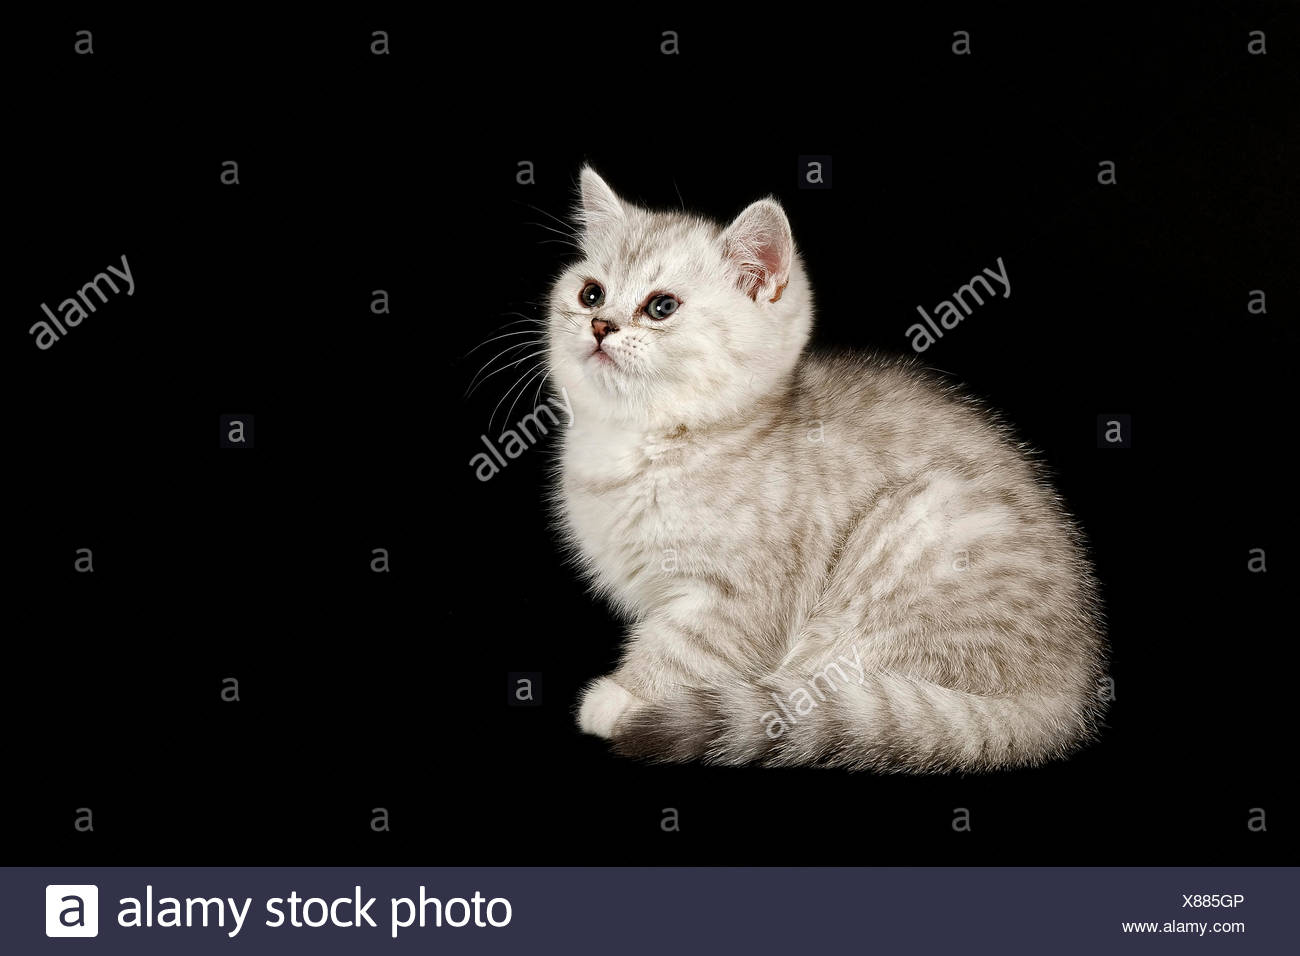 Selkirk Rex Cat Breed Kitten 8 Weeks Fur Colour Silver Shaded